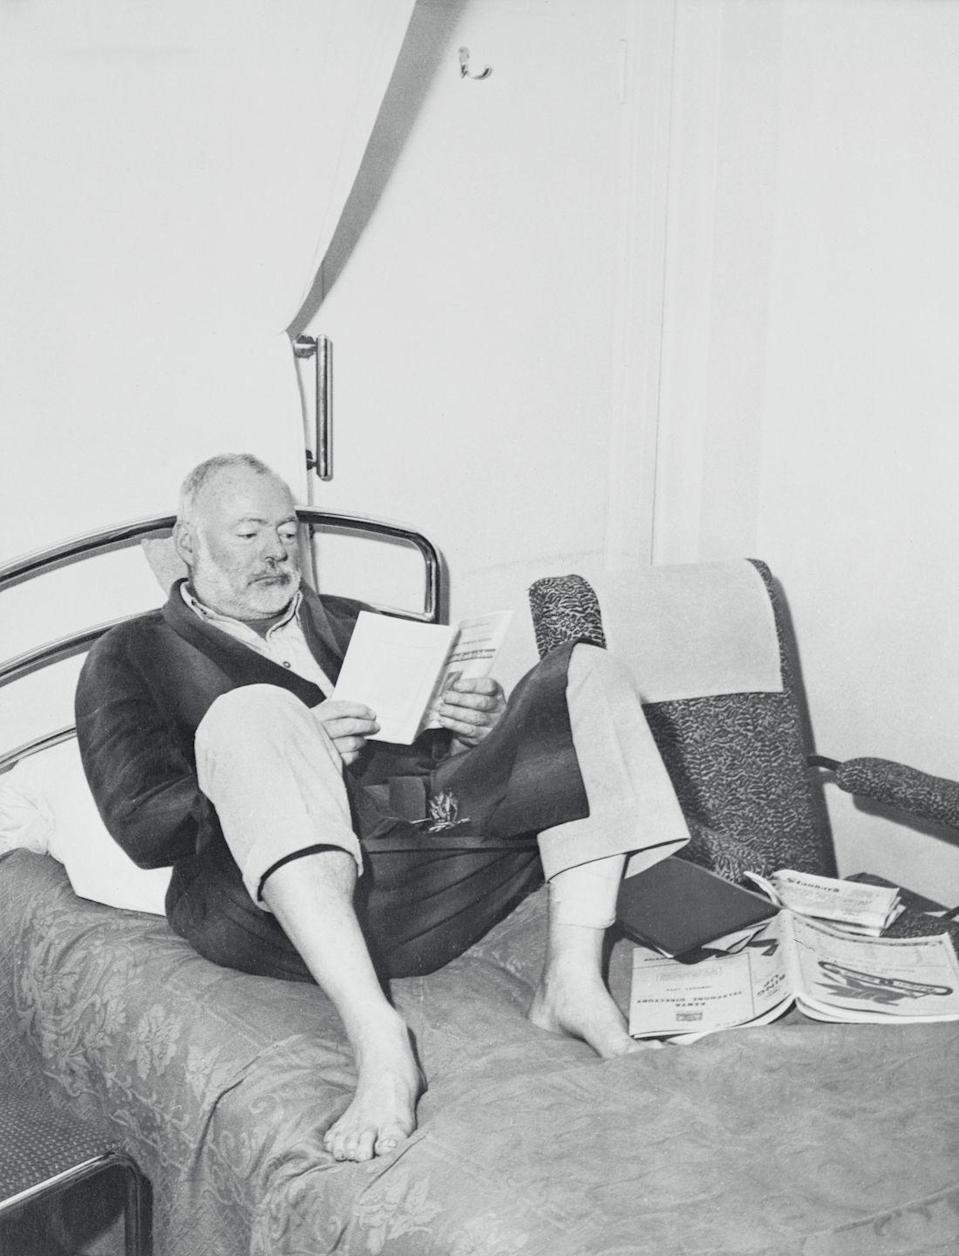 """<p>Hemingway survived not one, but <a href=""""https://archive.nytimes.com/www.nytimes.com/books/99/07/04/specials/hemingway-safe.html#:~:text=ampala%2C%20Uganda%2C%20Monday%2C%20Jan,Nile%20country%20of%20East%20Africa.&text=That%20plane%20crashed%20and%20burned,but%20all%20aboard%20escaped%20unhurt."""" rel=""""nofollow noopener"""" target=""""_blank"""" data-ylk=""""slk:two plane crashes"""" class=""""link rapid-noclick-resp"""">two plane crashes</a>, while traveling in Africa in 1954. The public feared that the literary figure was dead, however Hemingway and his wife survived both crashes. </p>"""